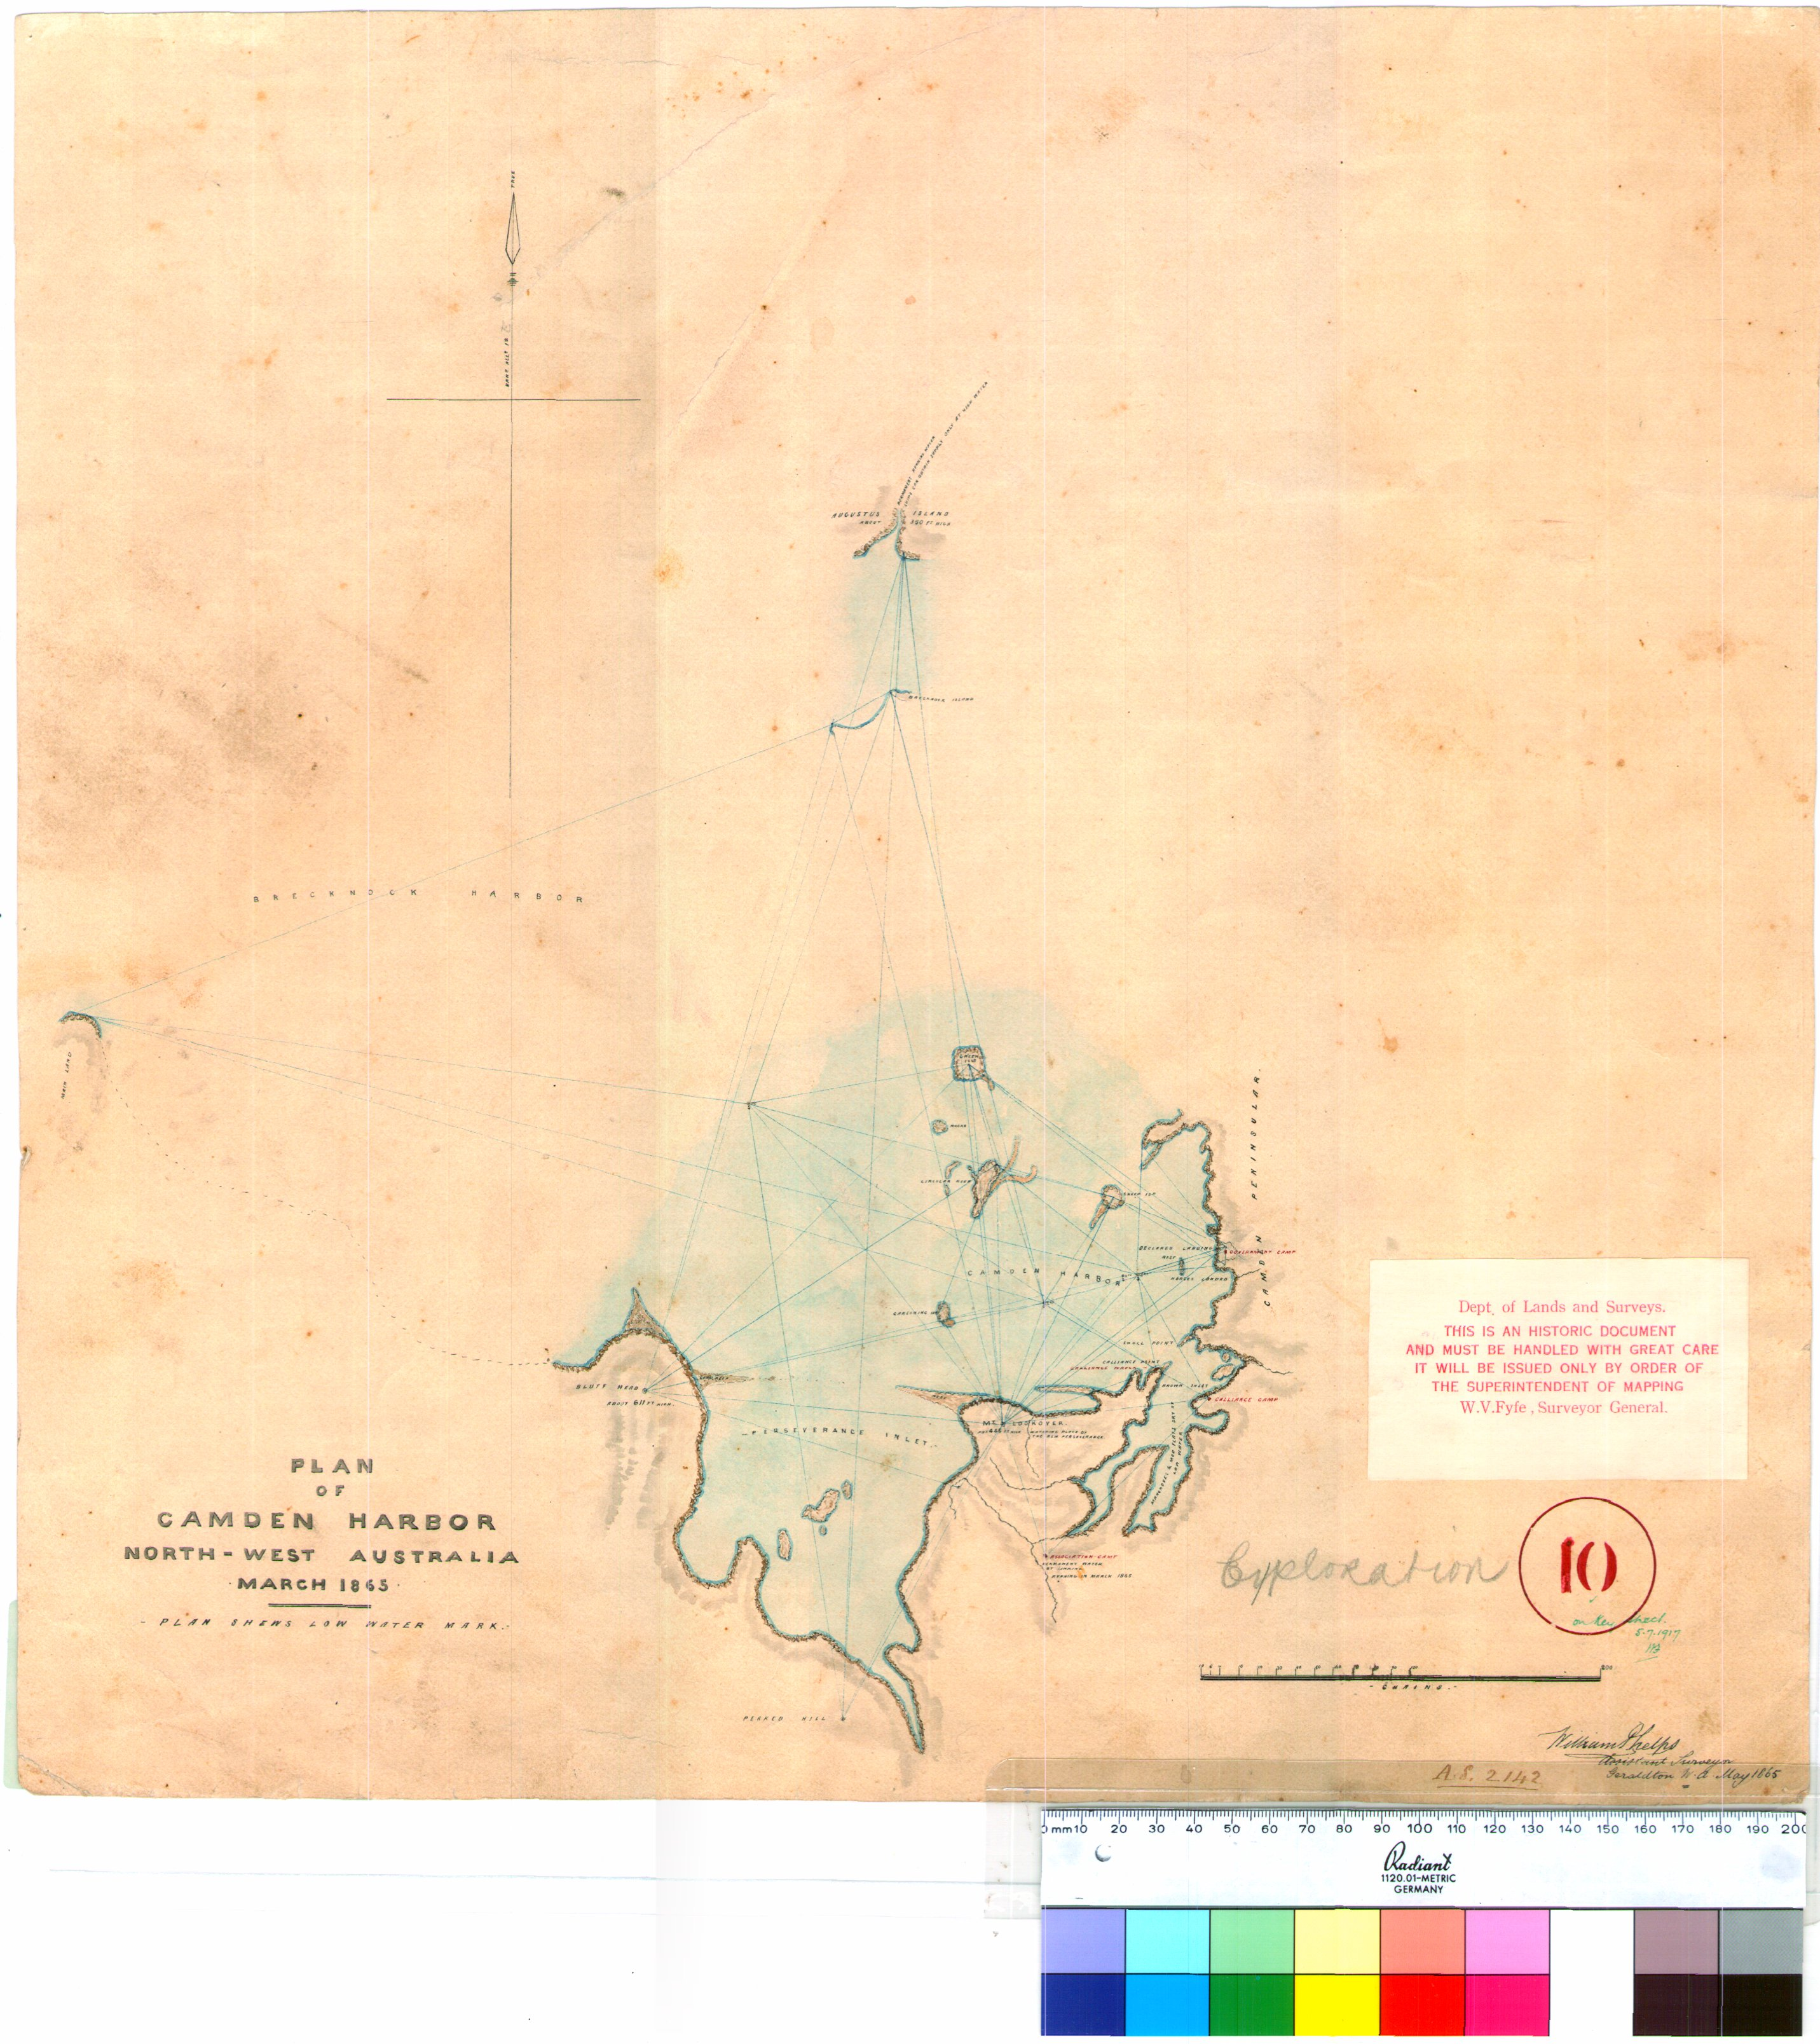 Map Of North West Australia.Map Of Camden Harbour North West Australia March 1865 William